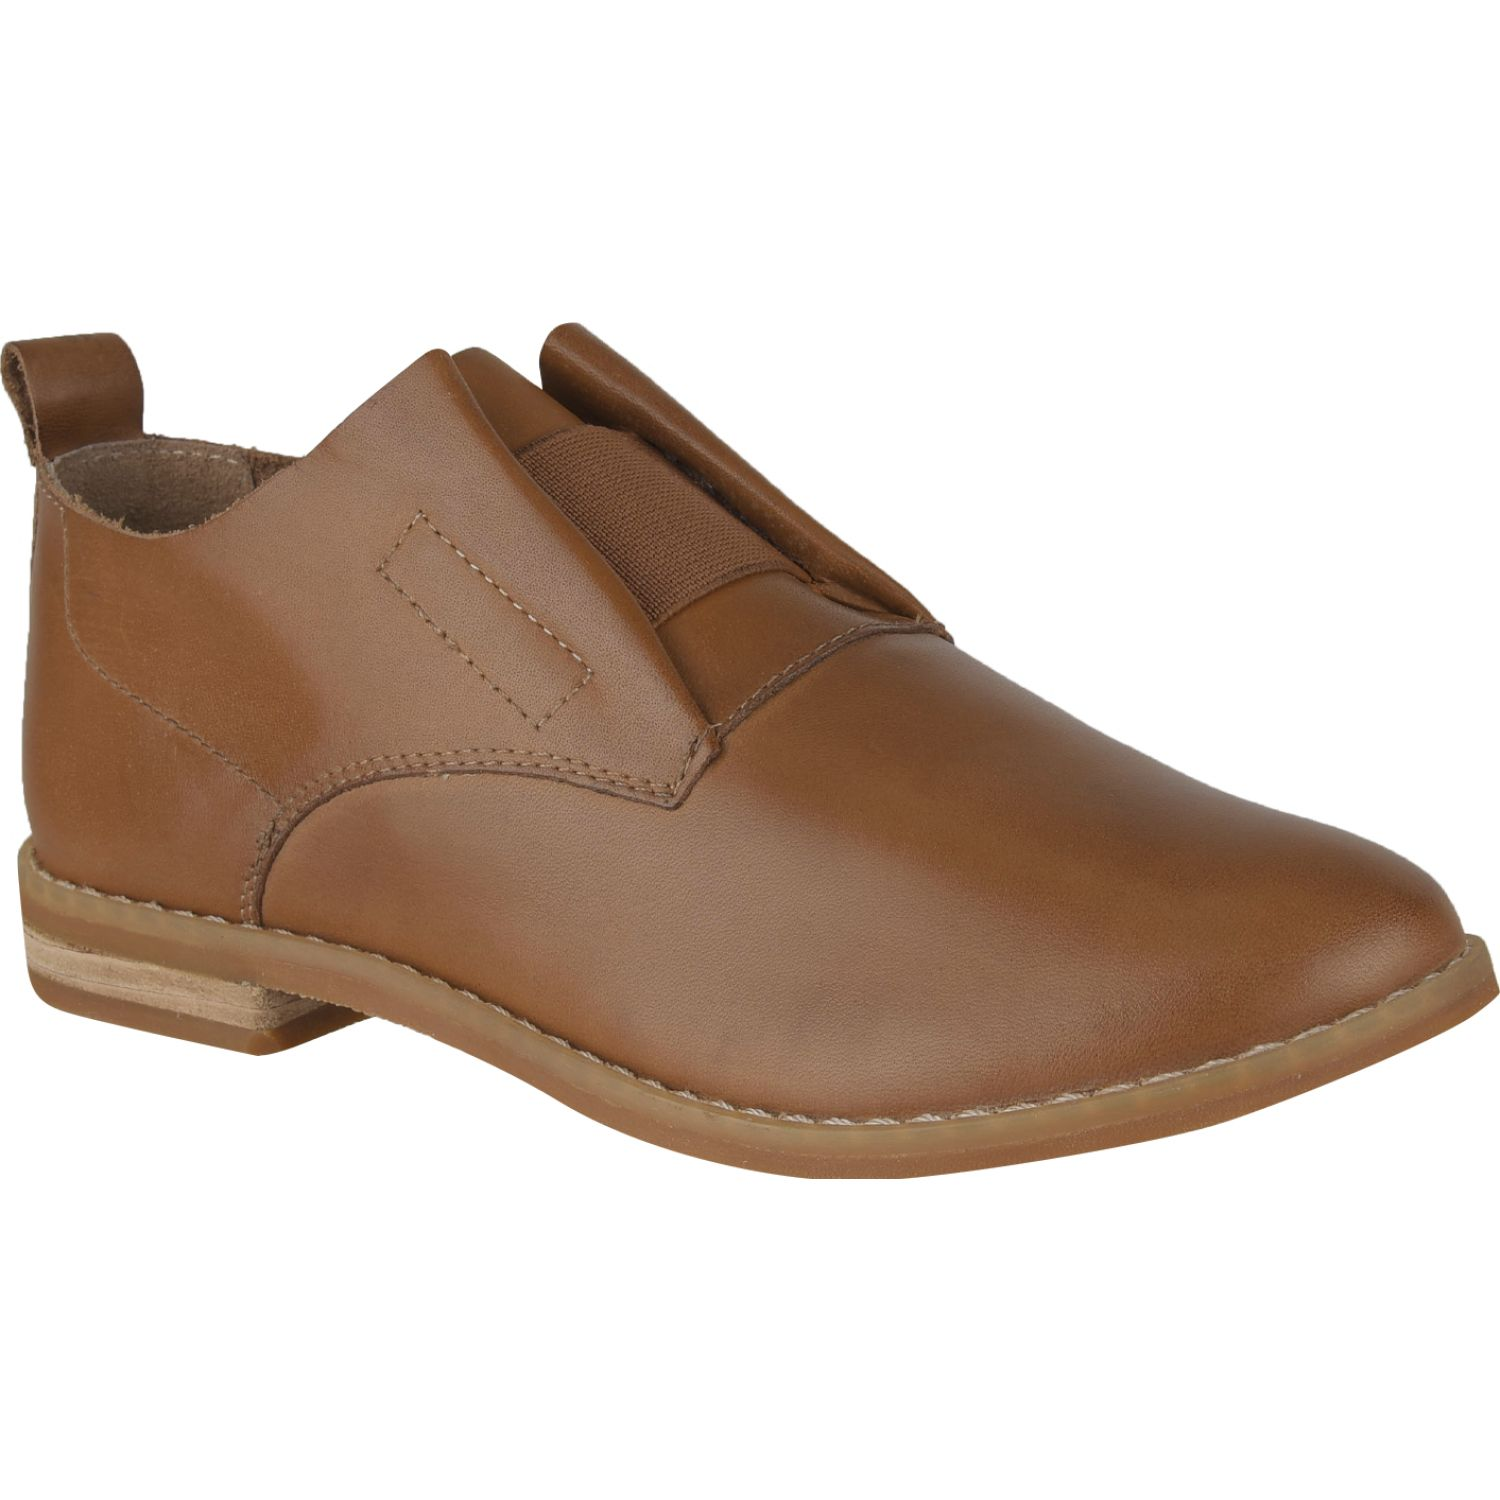 Hush Puppies annerley clever Tan Oxfords